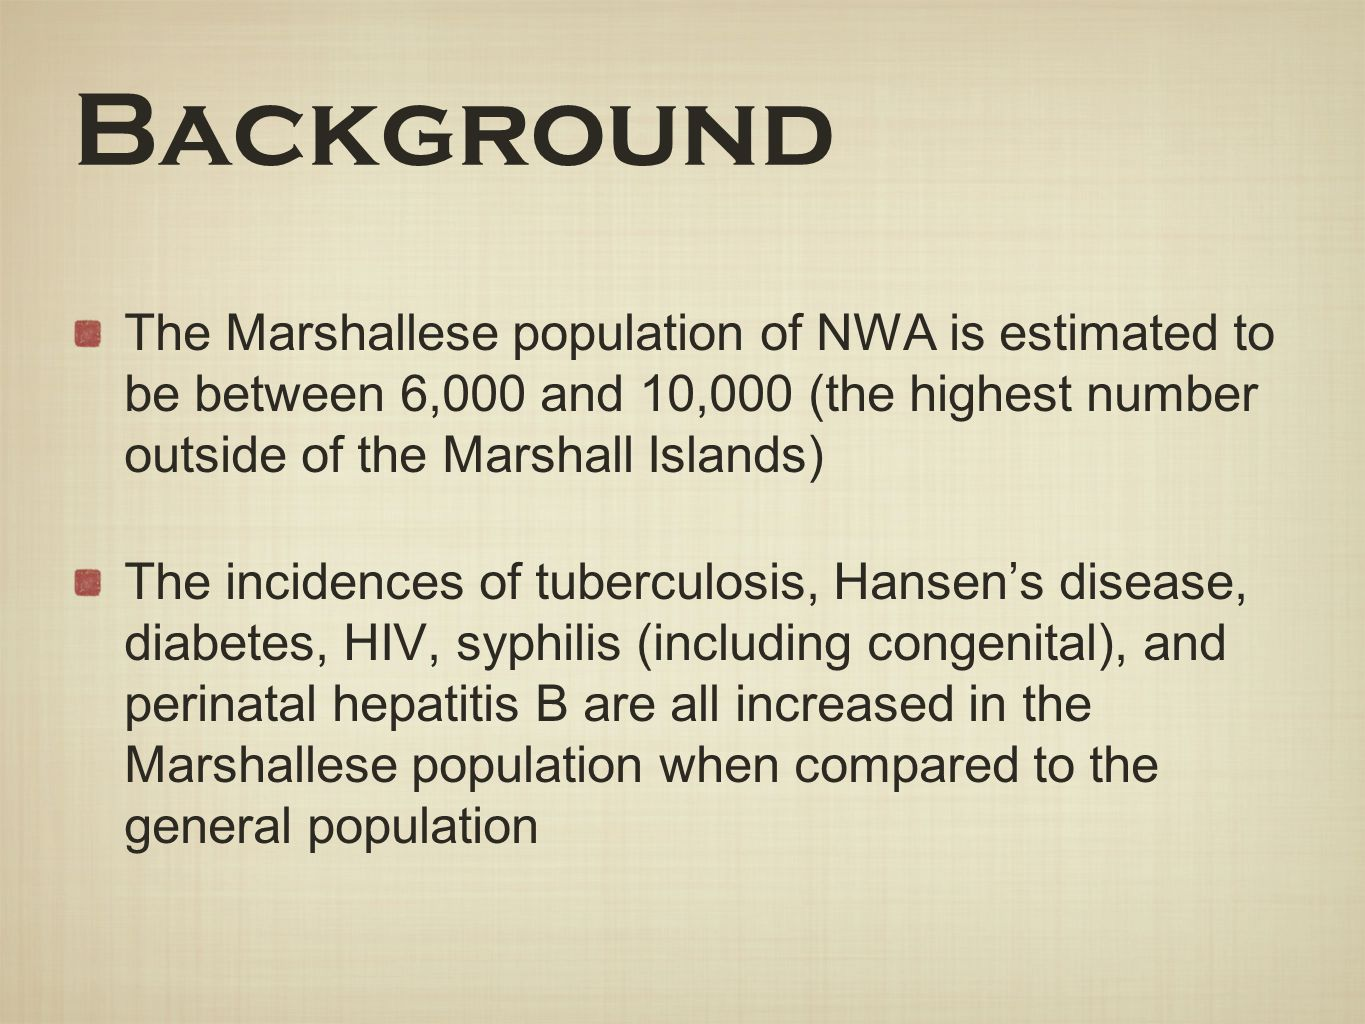 Background The Marshallese population of NWA is estimated to be between 6,000 and 10,000 (the highest number outside of the Marshall Islands) The inci